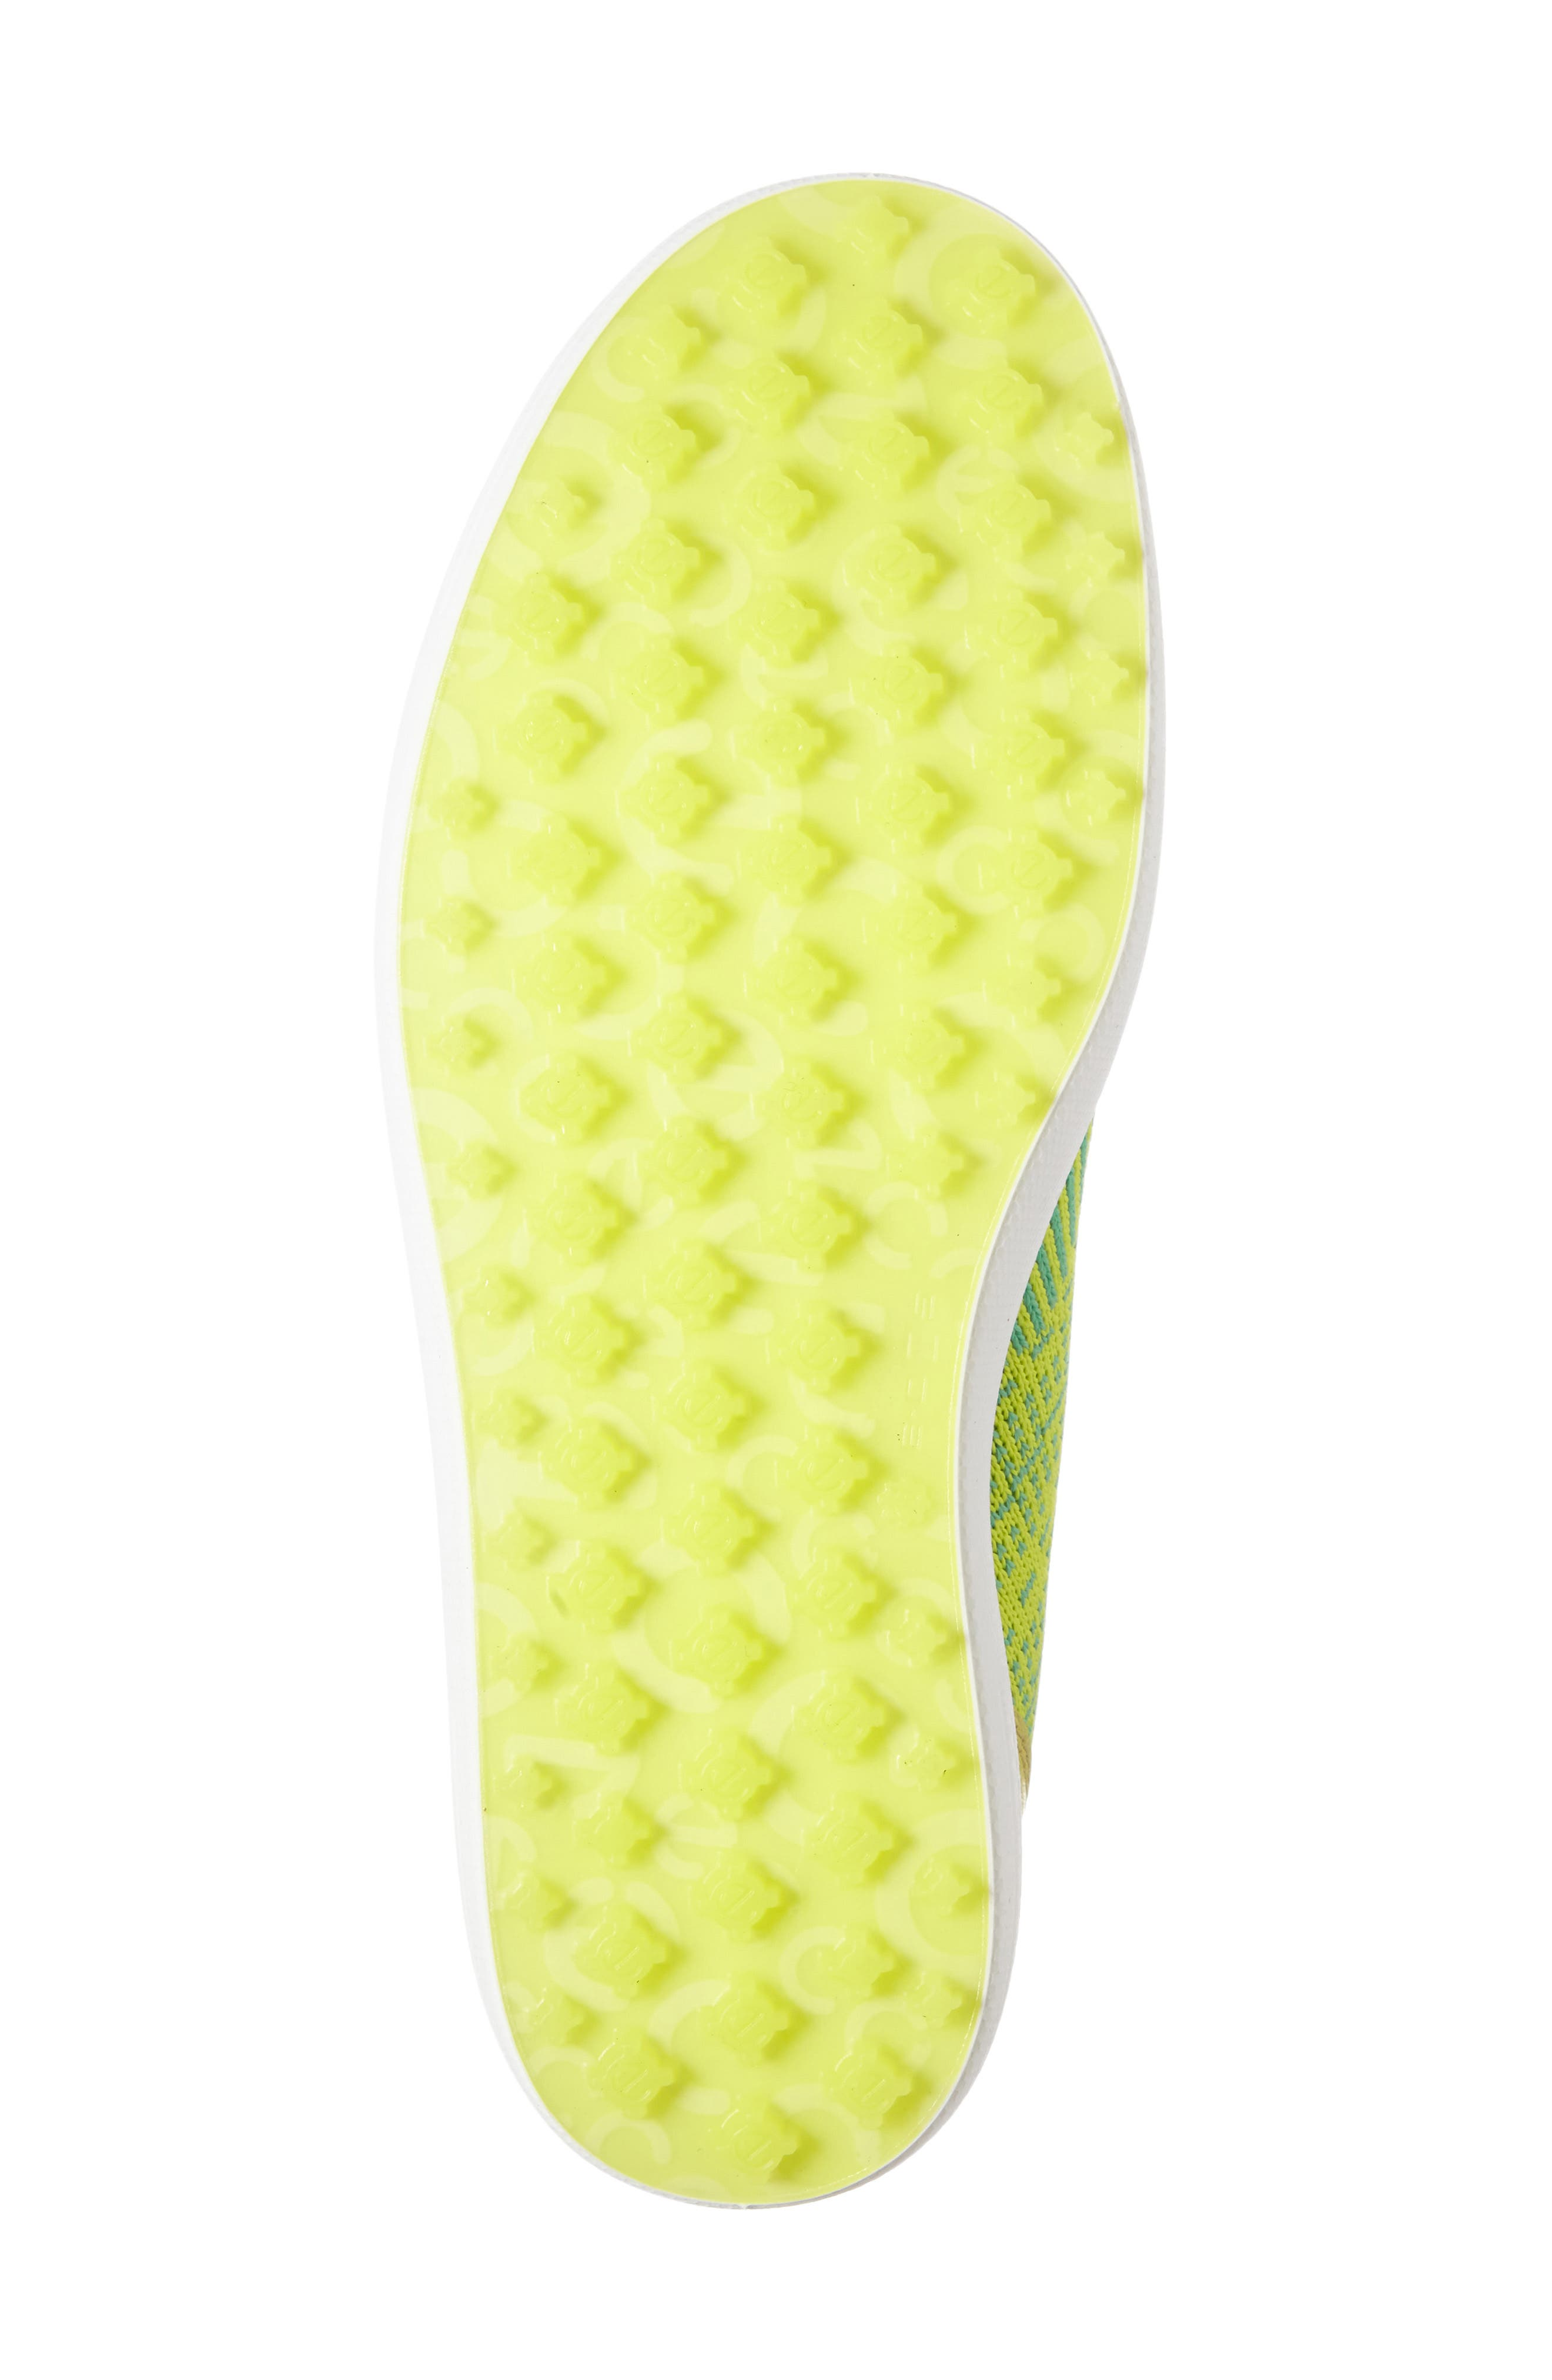 Casual Hybrid Knit Golf Sneaker,                             Alternate thumbnail 4, color,                             Lime Punch/ Neon Leather